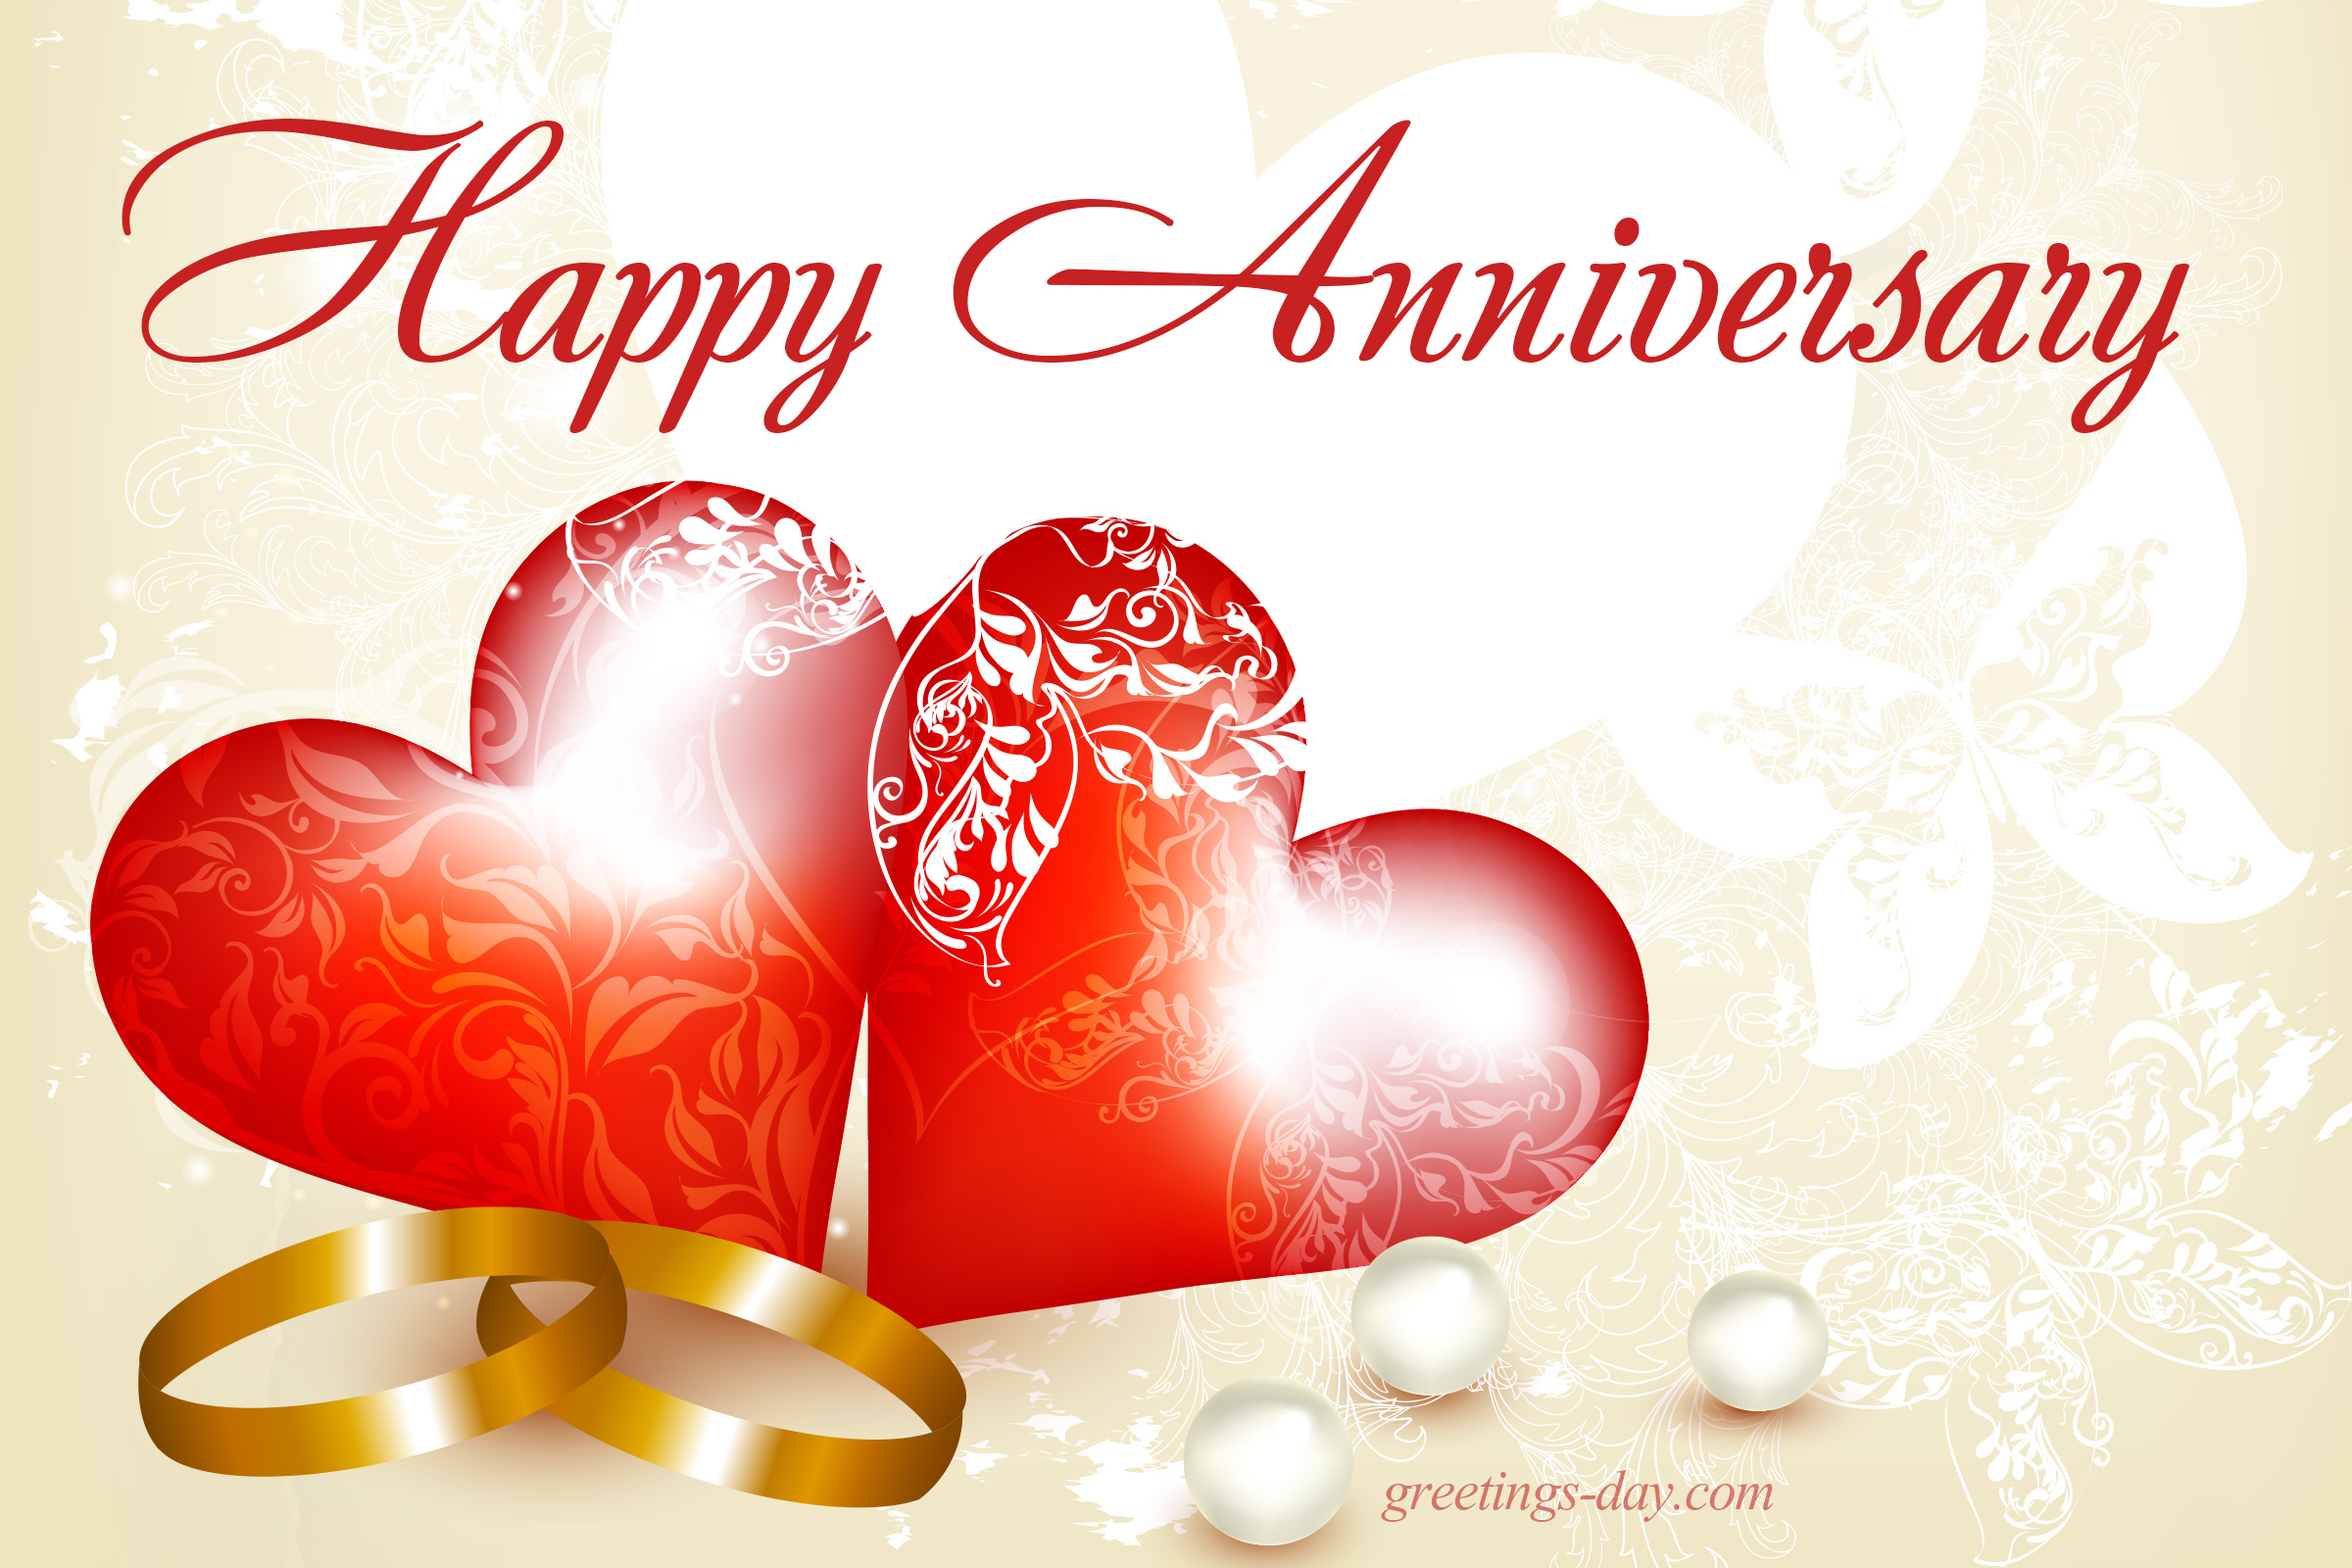 Wedding Anniversary – Free Ecards, Pics & Gifs.